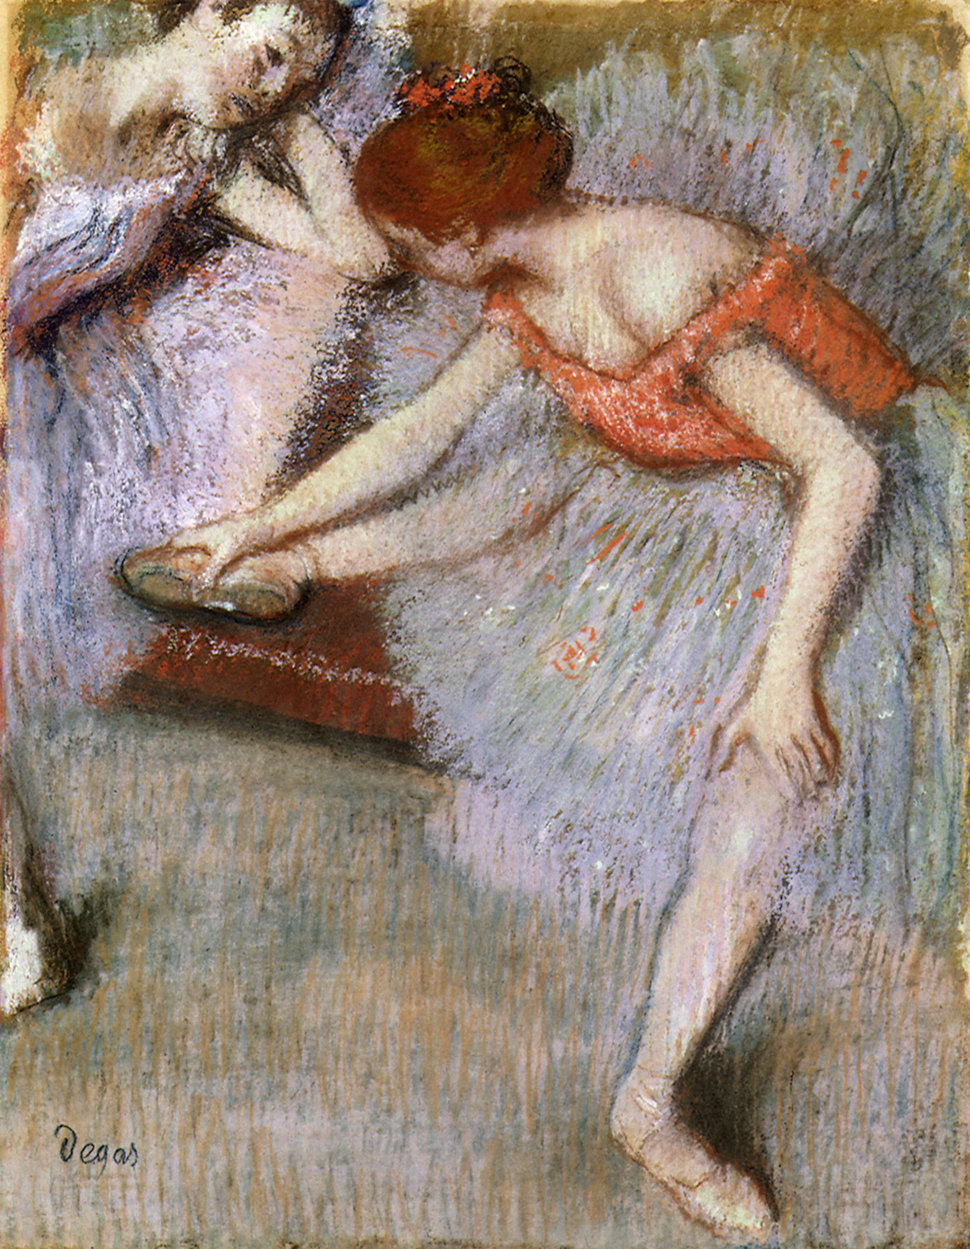 As an adult, Degas fraternized with few women aside from his housekeepers. His friends believed he feared women would in